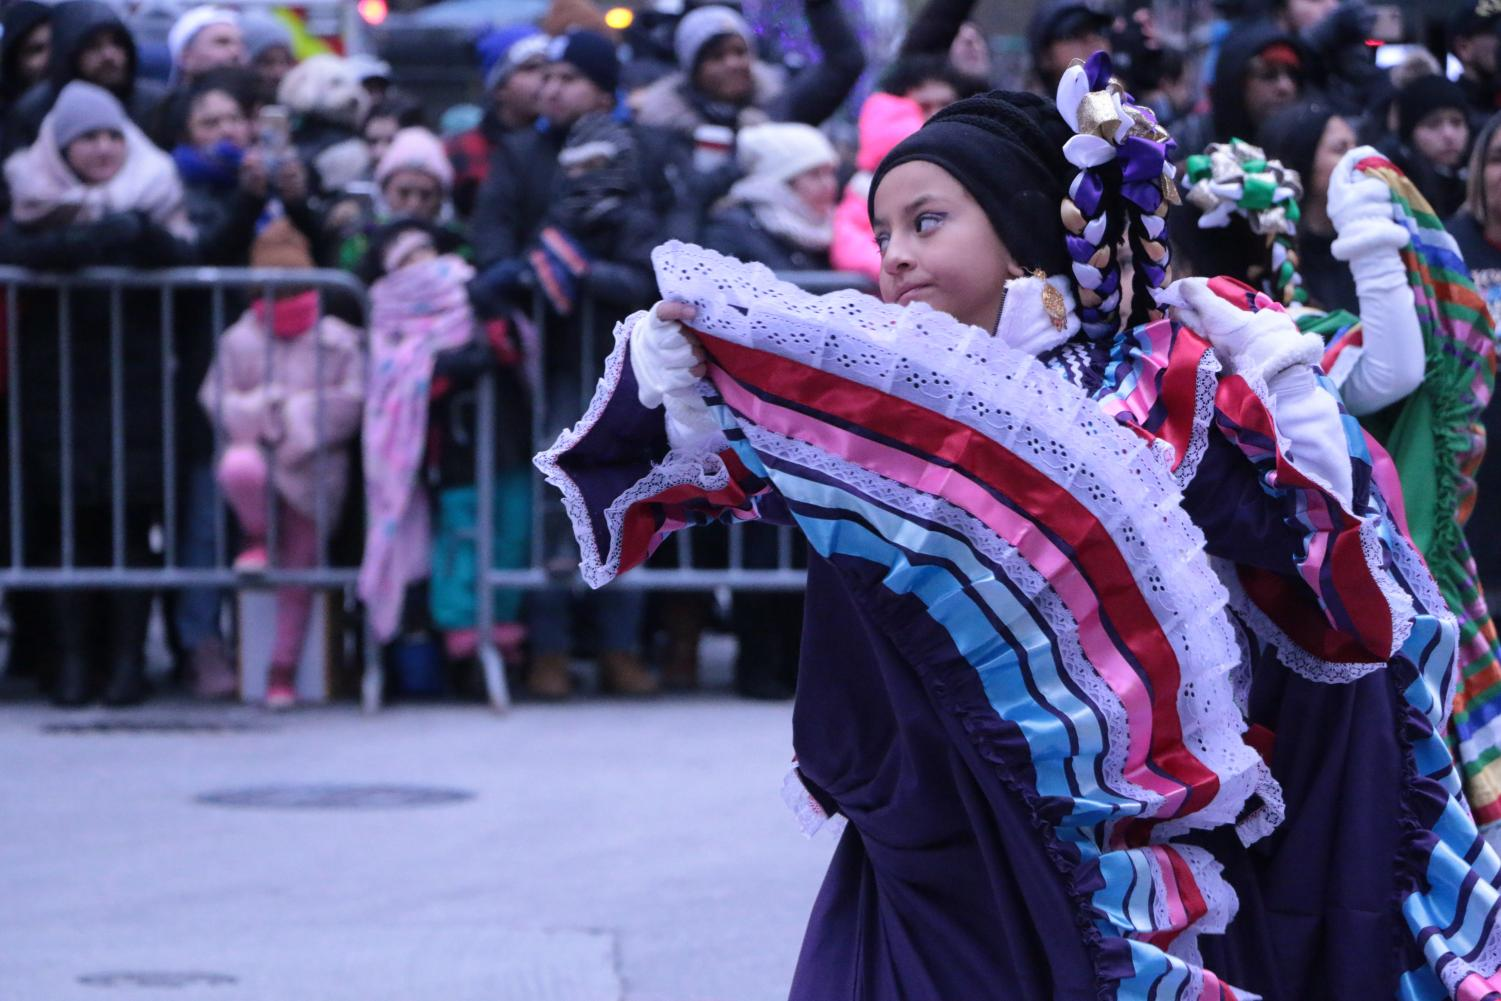 A+young+girl+performing+Jarabe+Tapat%C3%ADo%2C+a+Mexican+folk+dance.